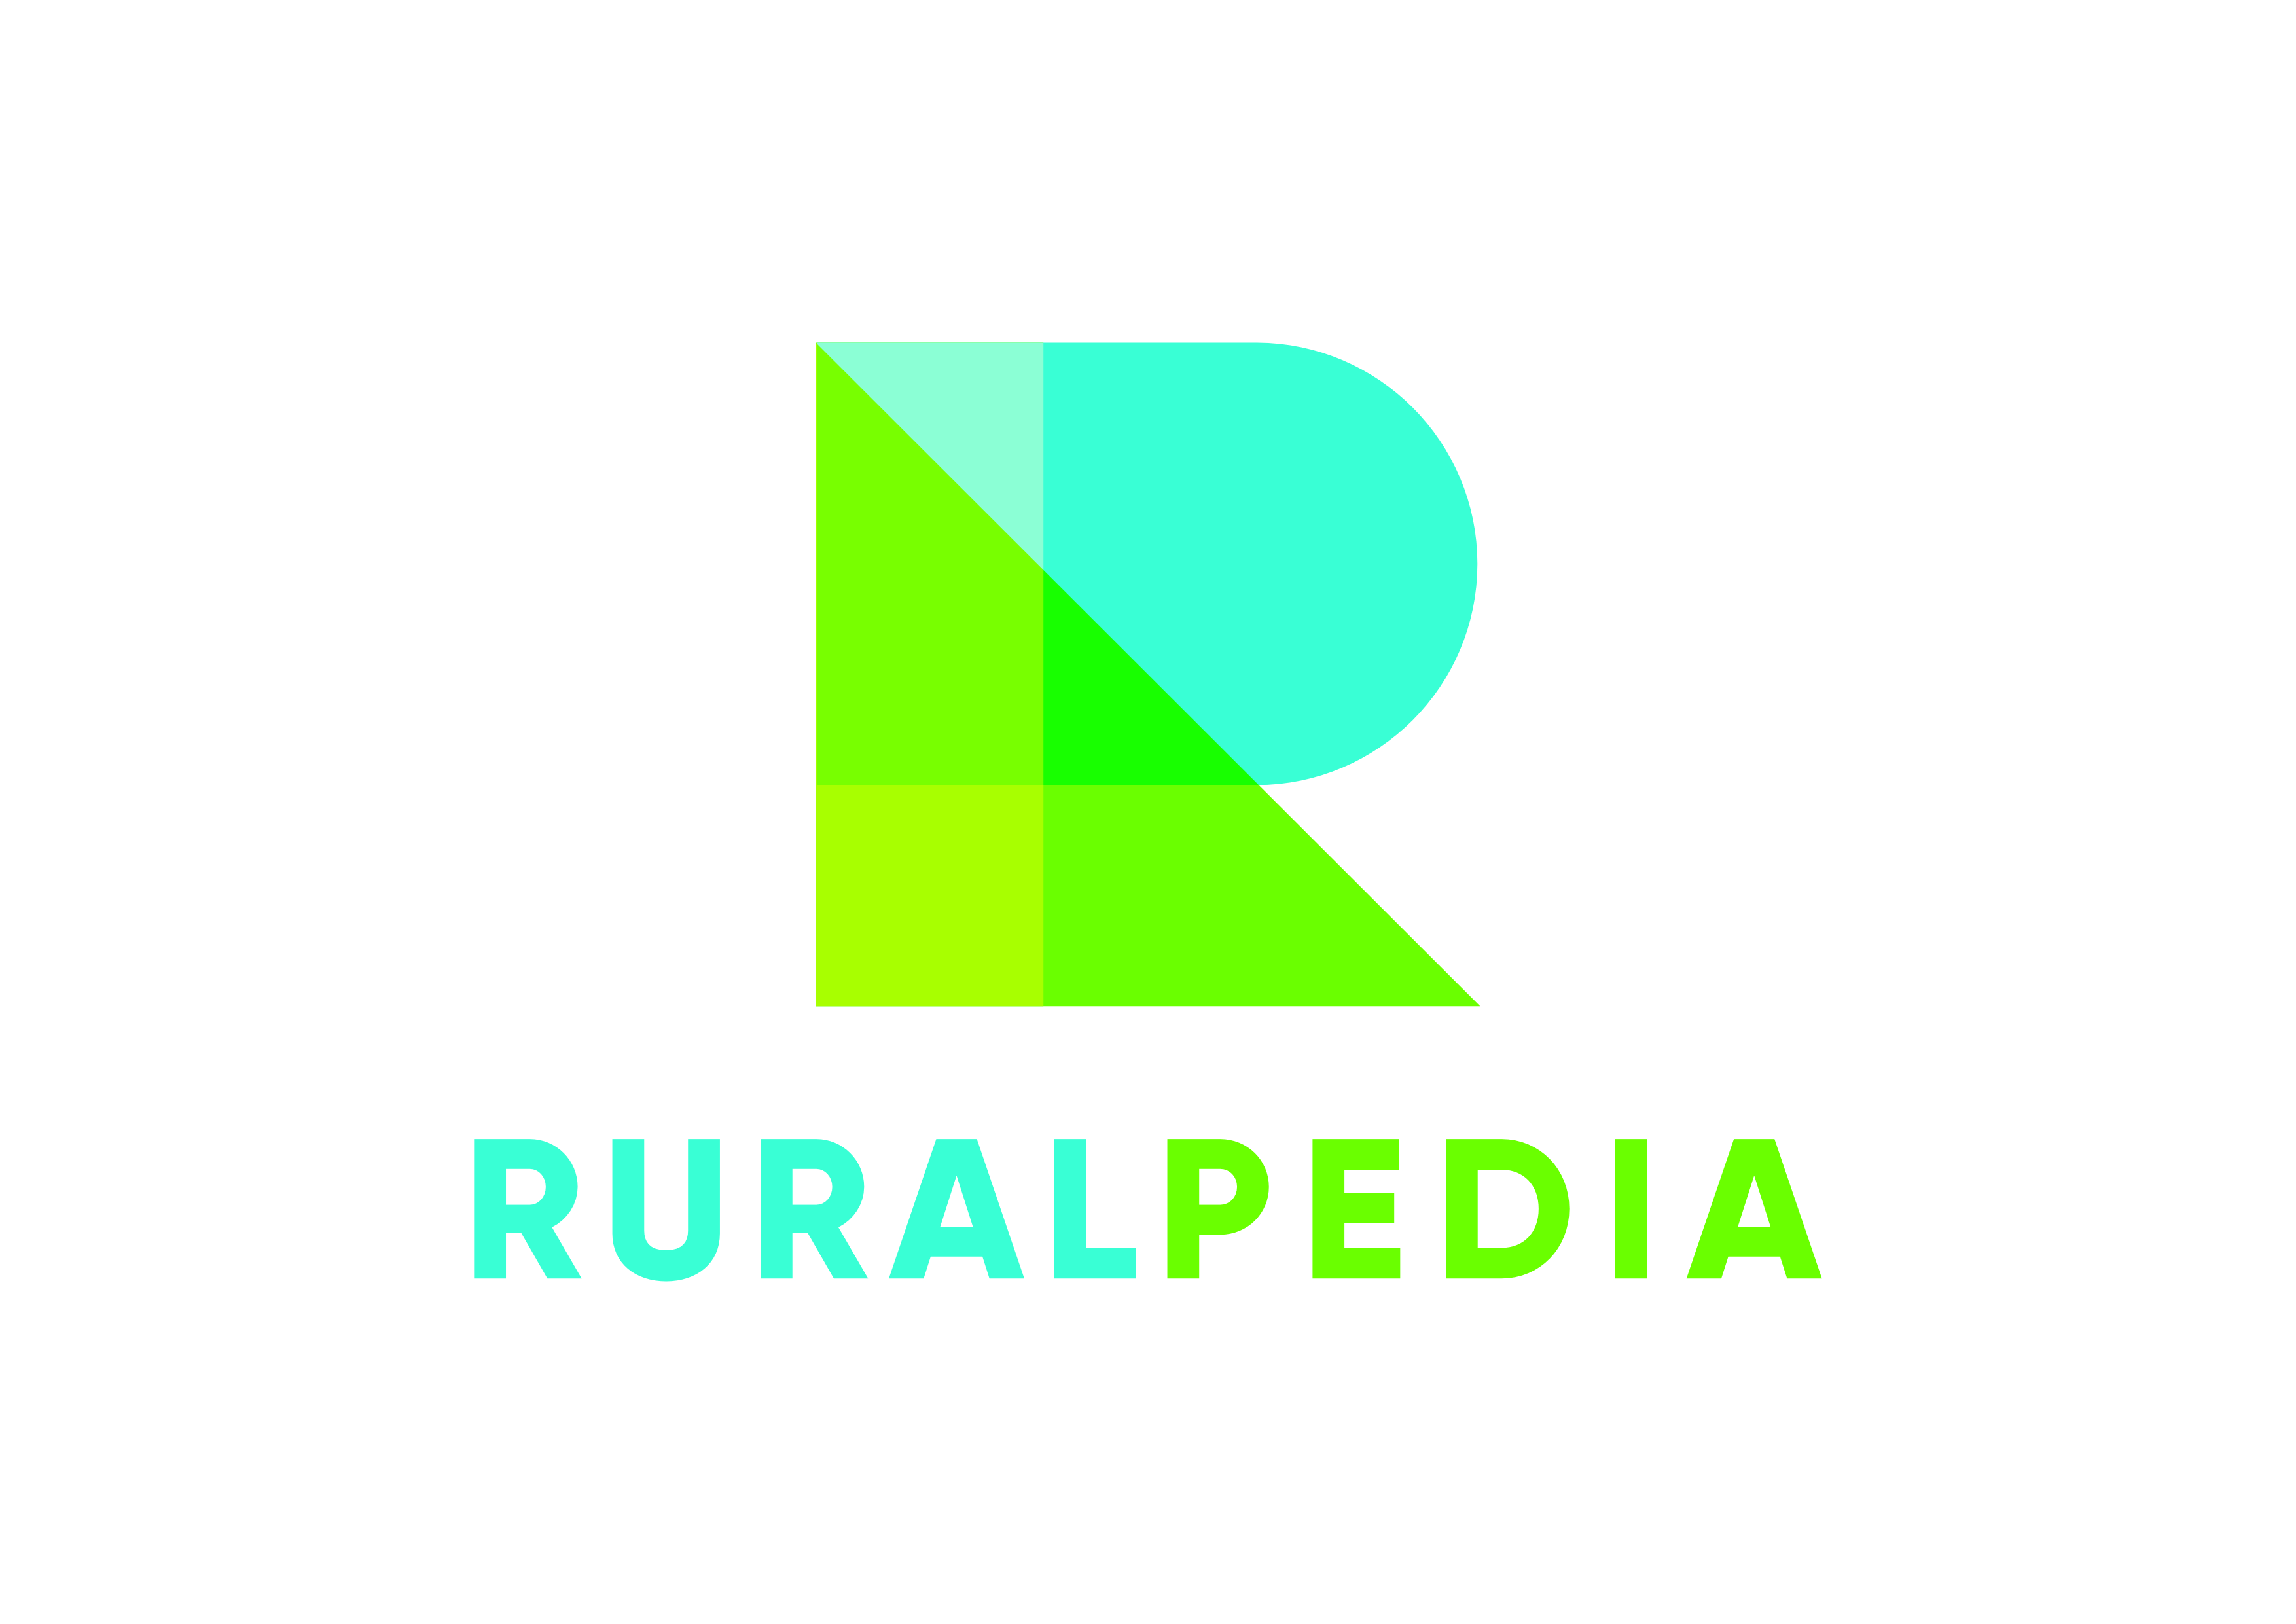 ruralpedia color princi